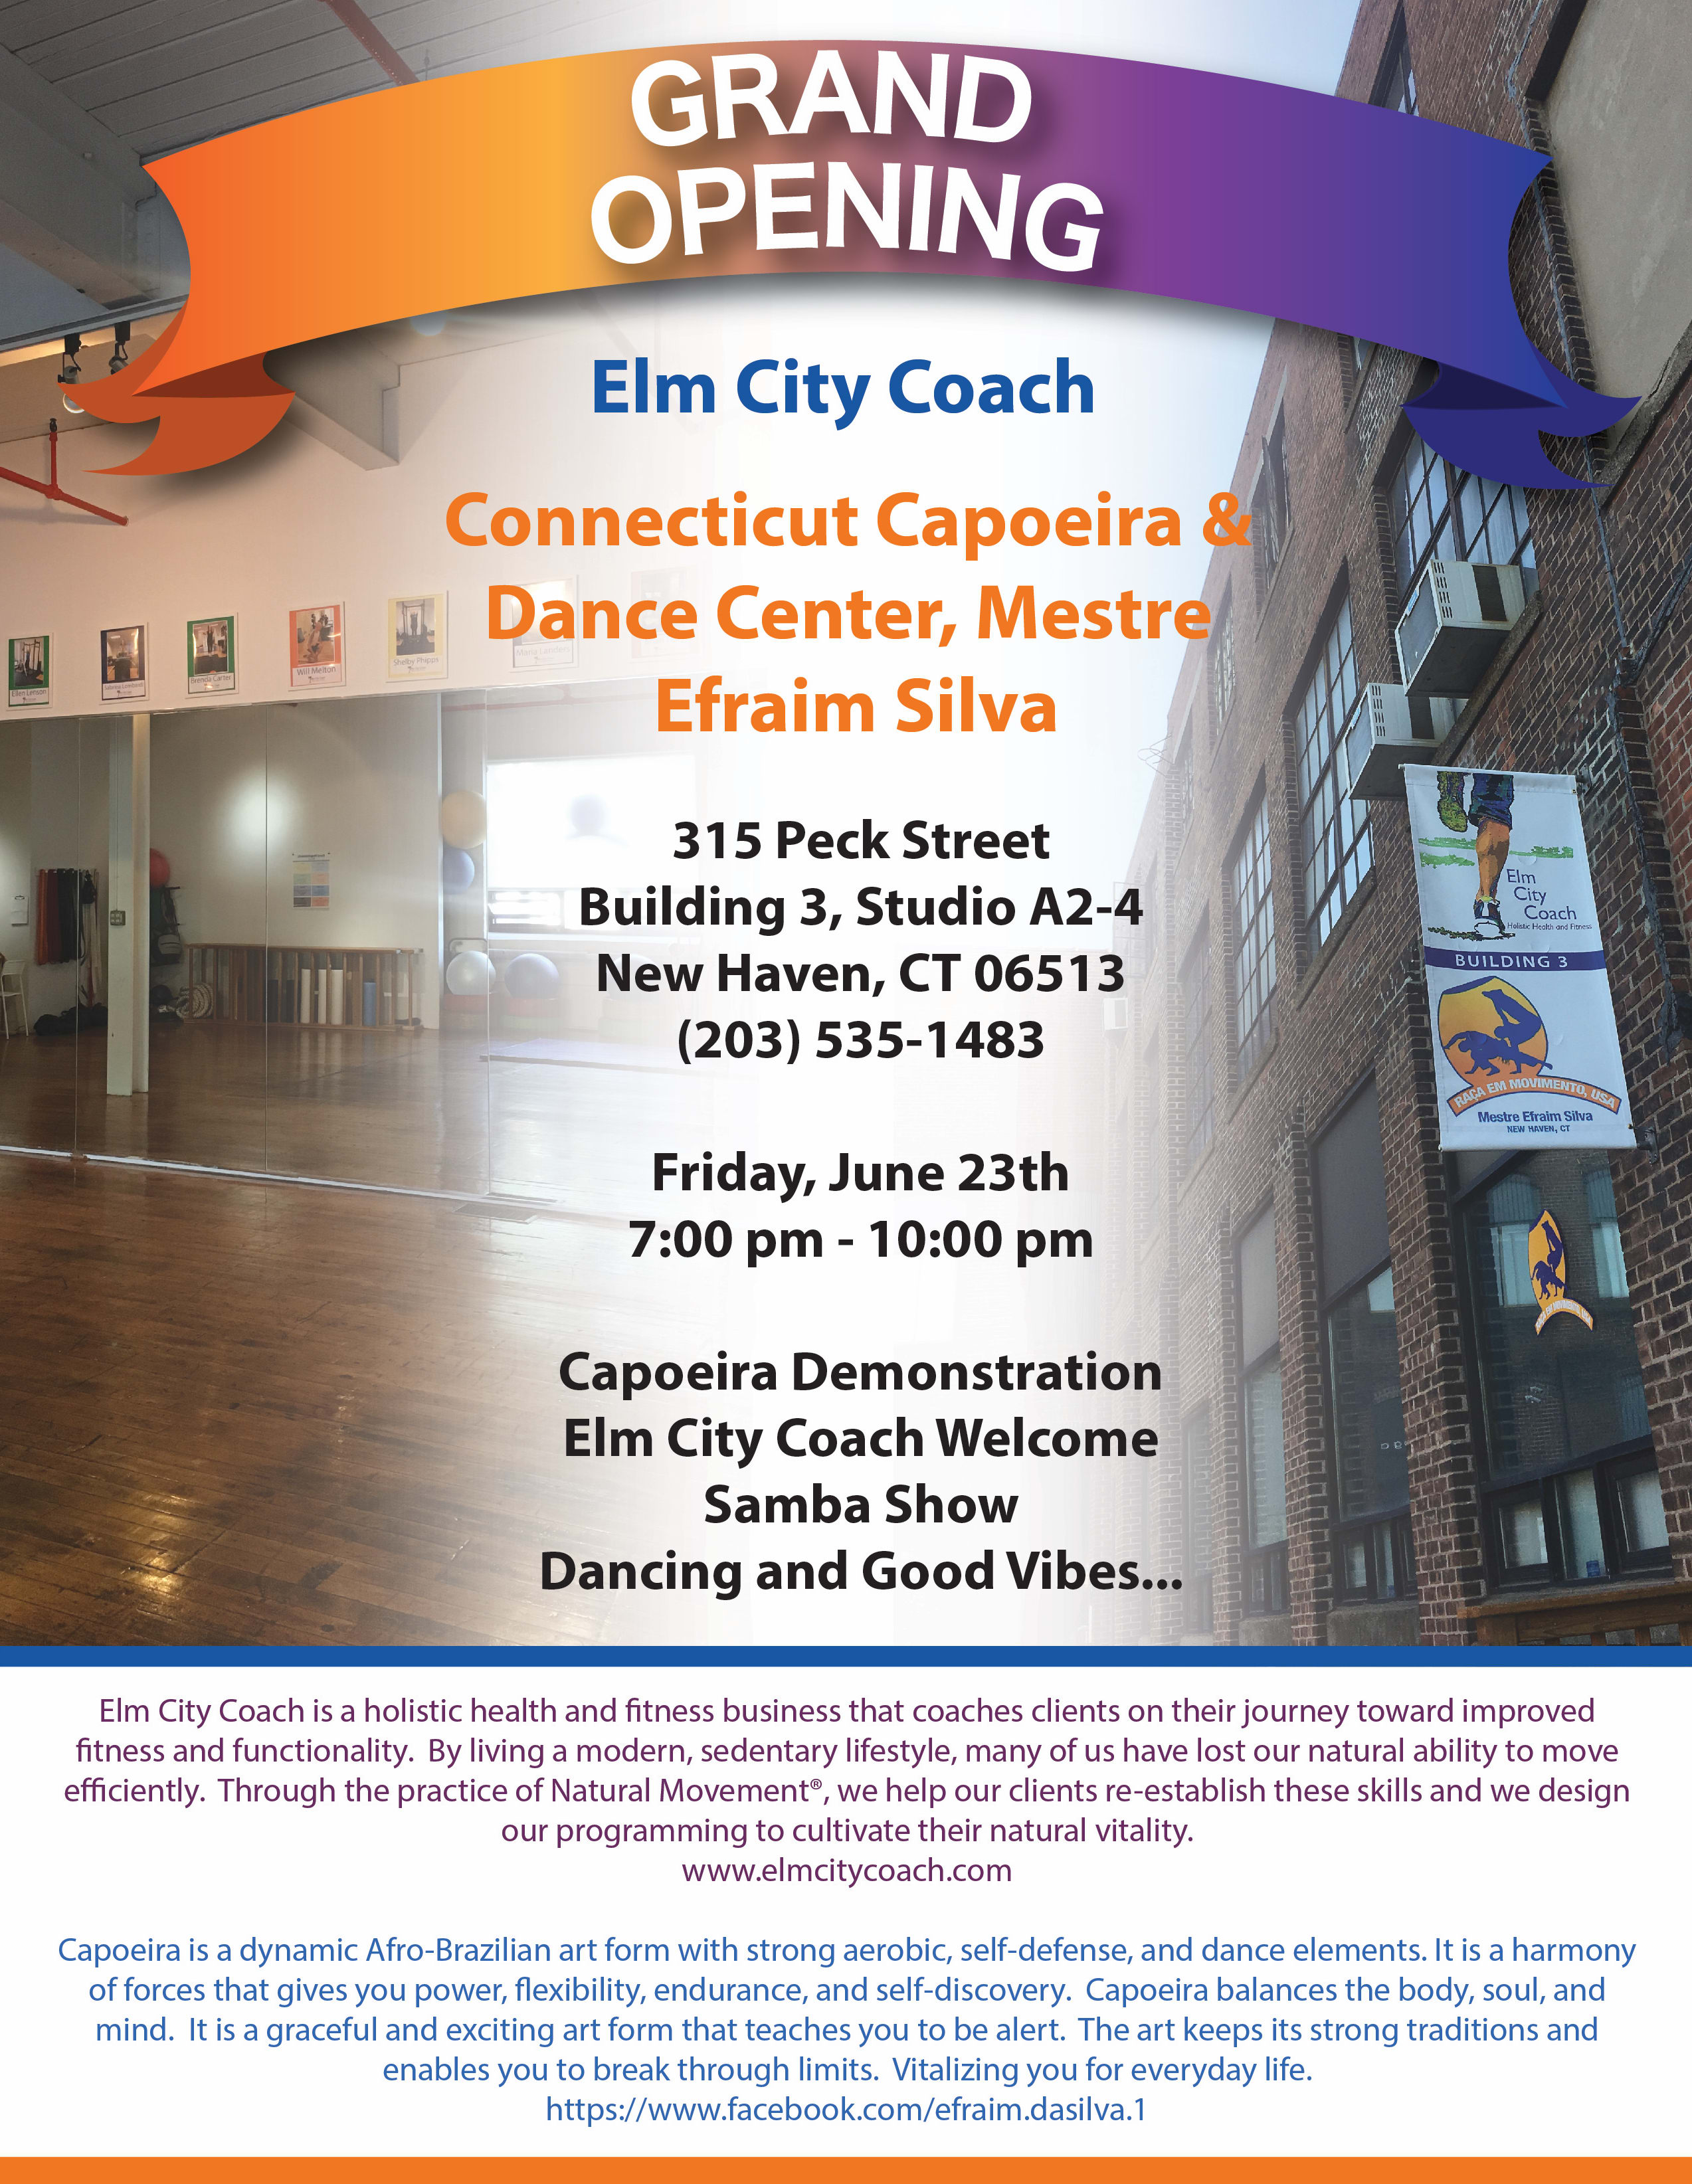 Grand Opening Celebration in New Haven - Elm City Coach